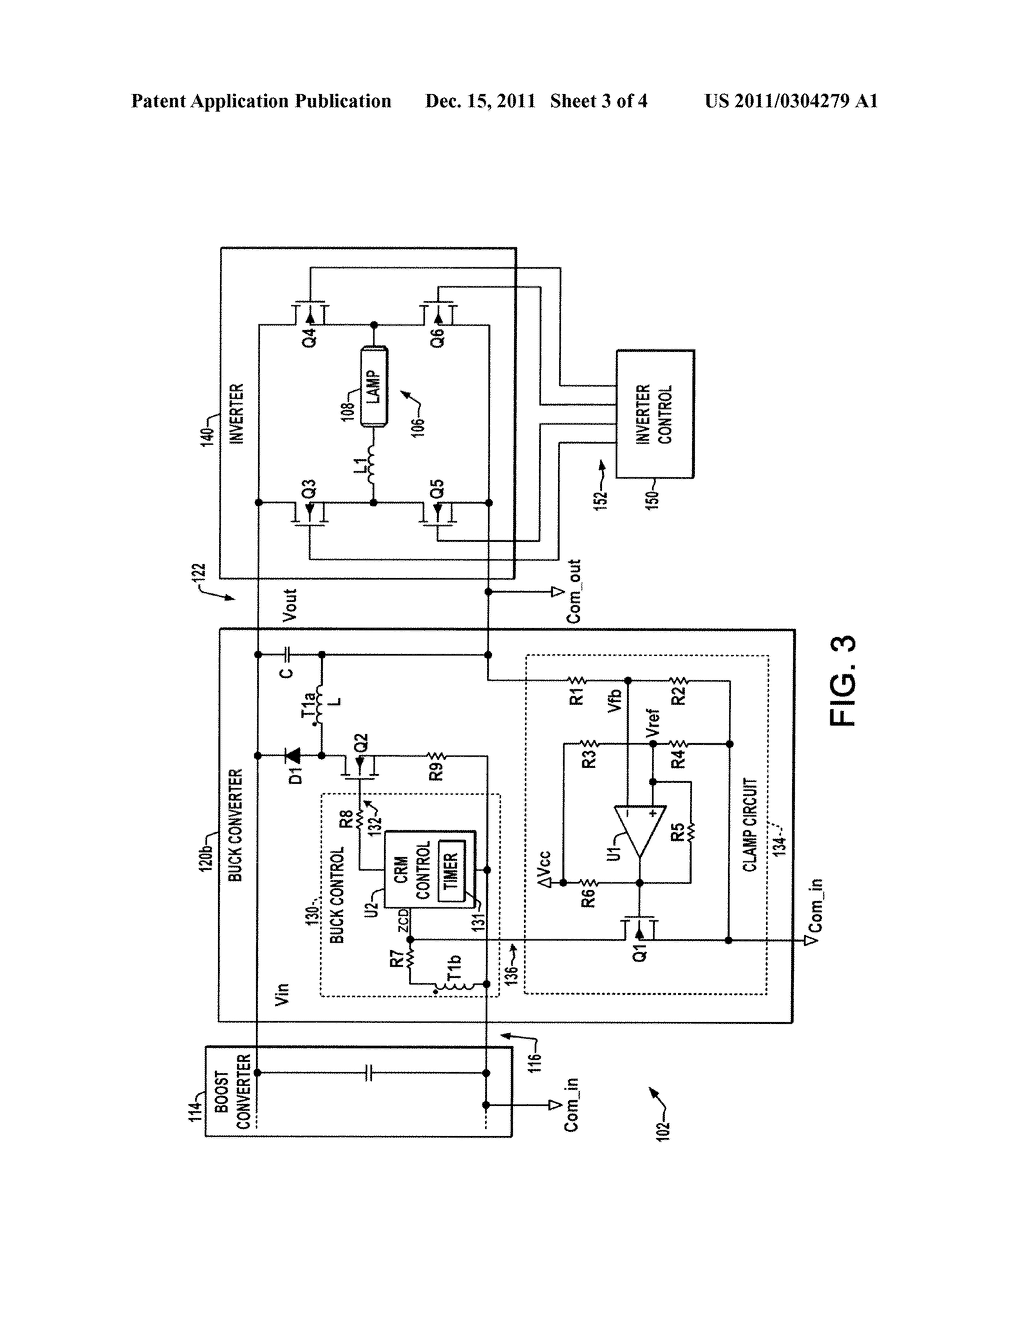 Hid Ballast Schematic Electronic Wiring Diagrams Circuit Diagram Open Voltage Clamp For High Pressure Sodium